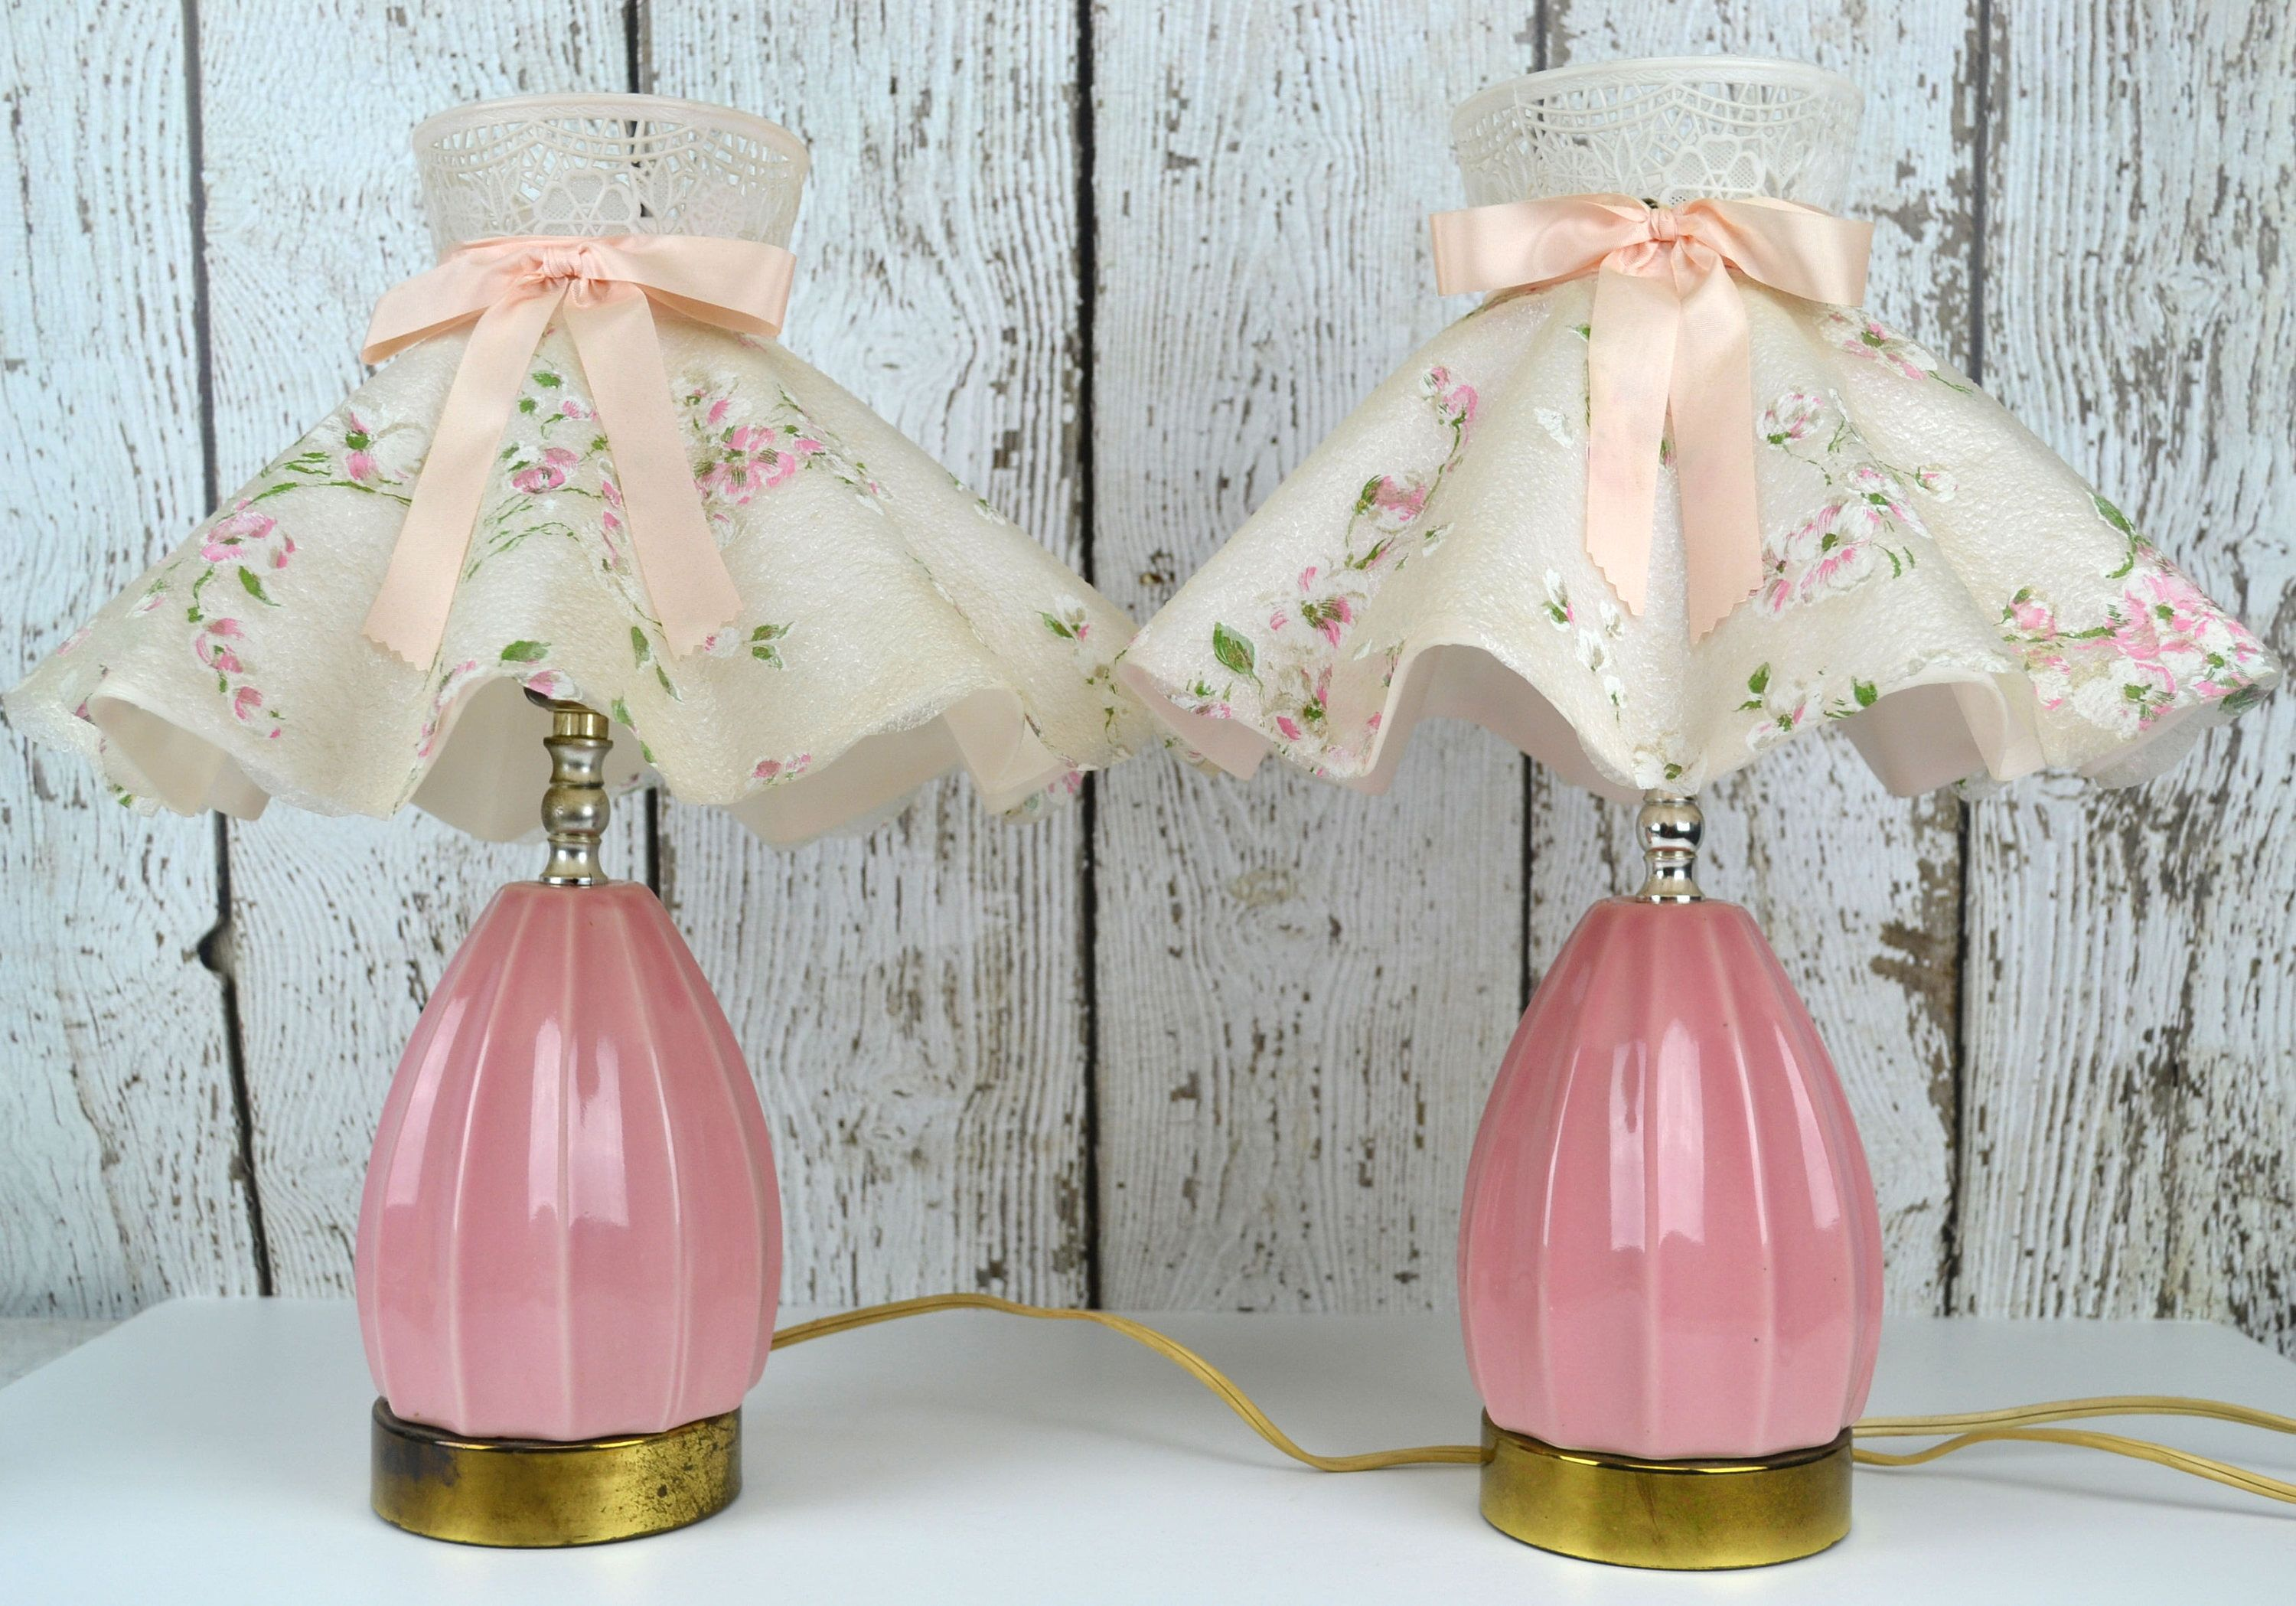 Vintage pink ceramic bedroom lamps pair with plastic clip on vintage pink ceramic bedroom lamps pair with plastic clip on ruffled lamp shades matching table lamps floral lamp shade bedroom lighting mozeypictures Gallery